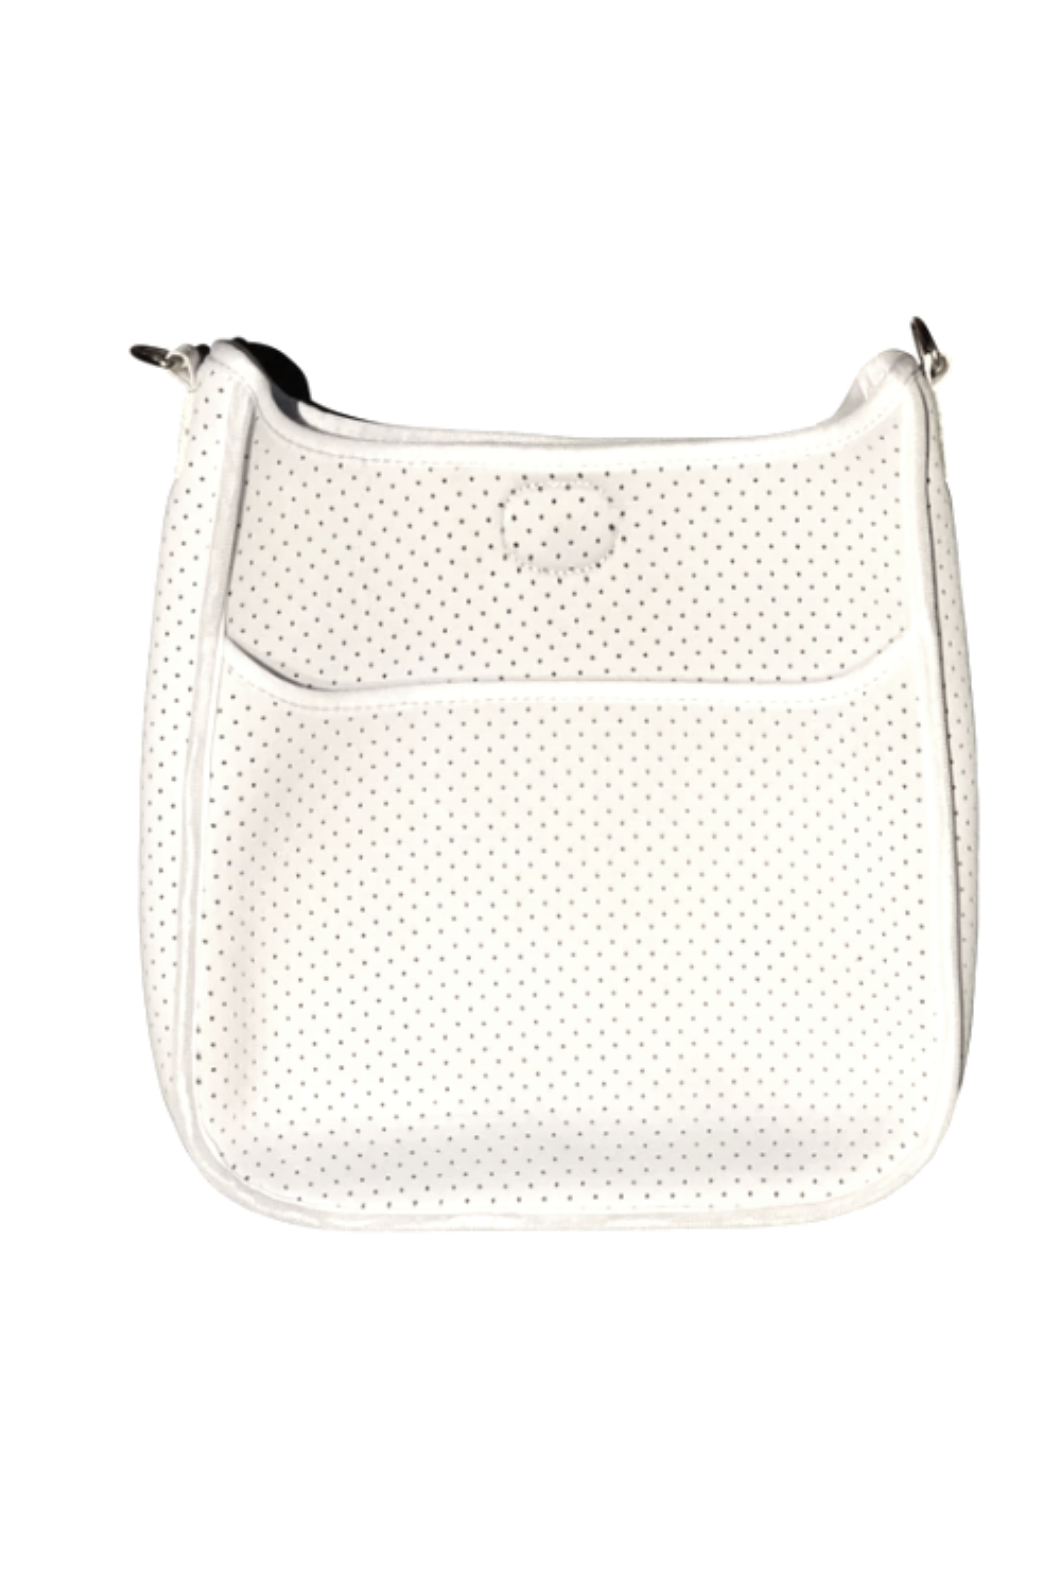 Ah!dorned Perforated Neoprene Messenger - Strap Not Included - Main Image